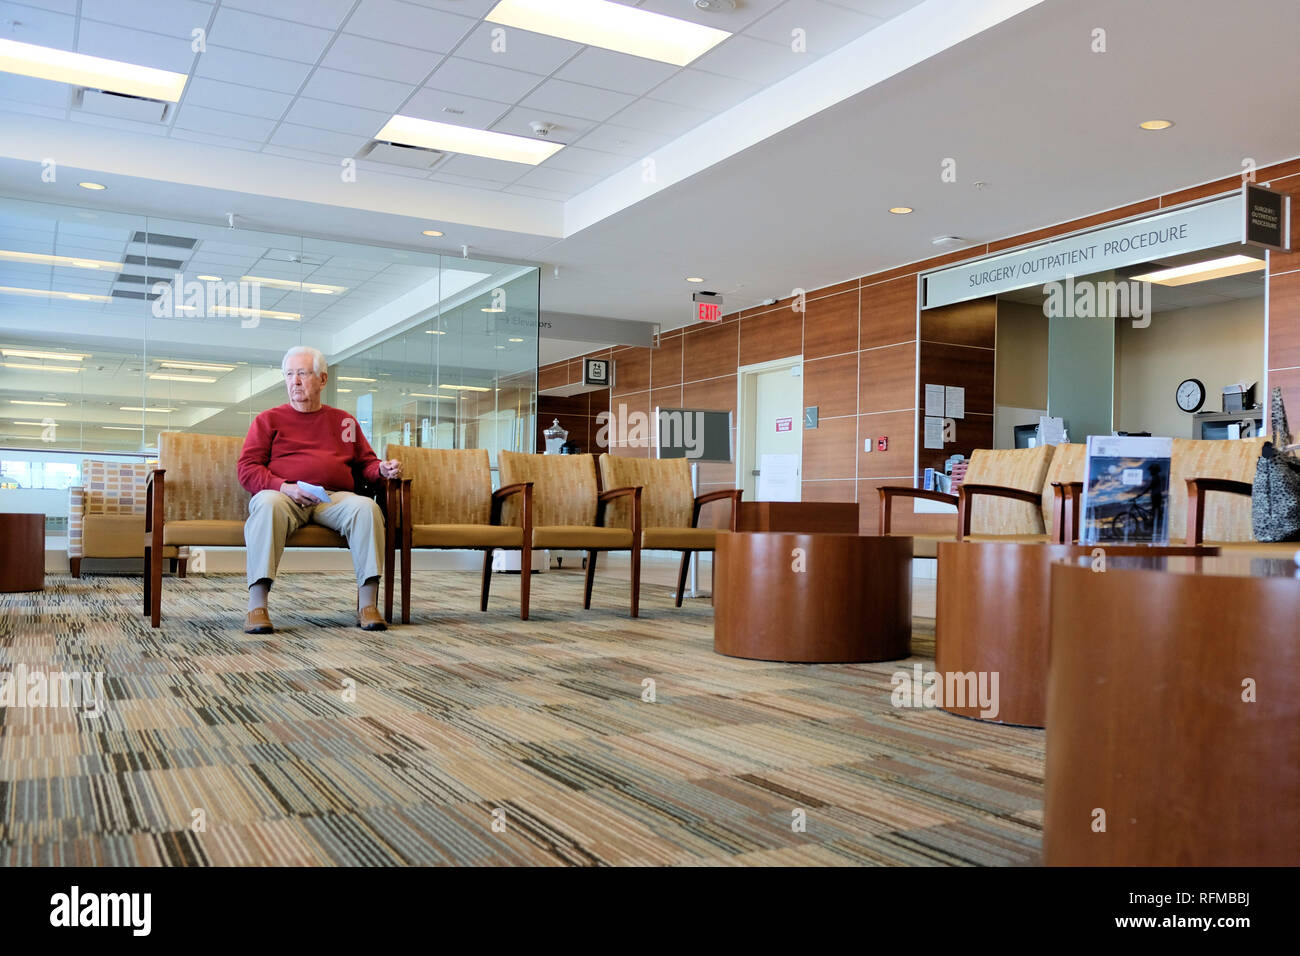 Surgery Outpatient Procedure waiting area in a hospital; old man sitting in waiting area. - Stock Image